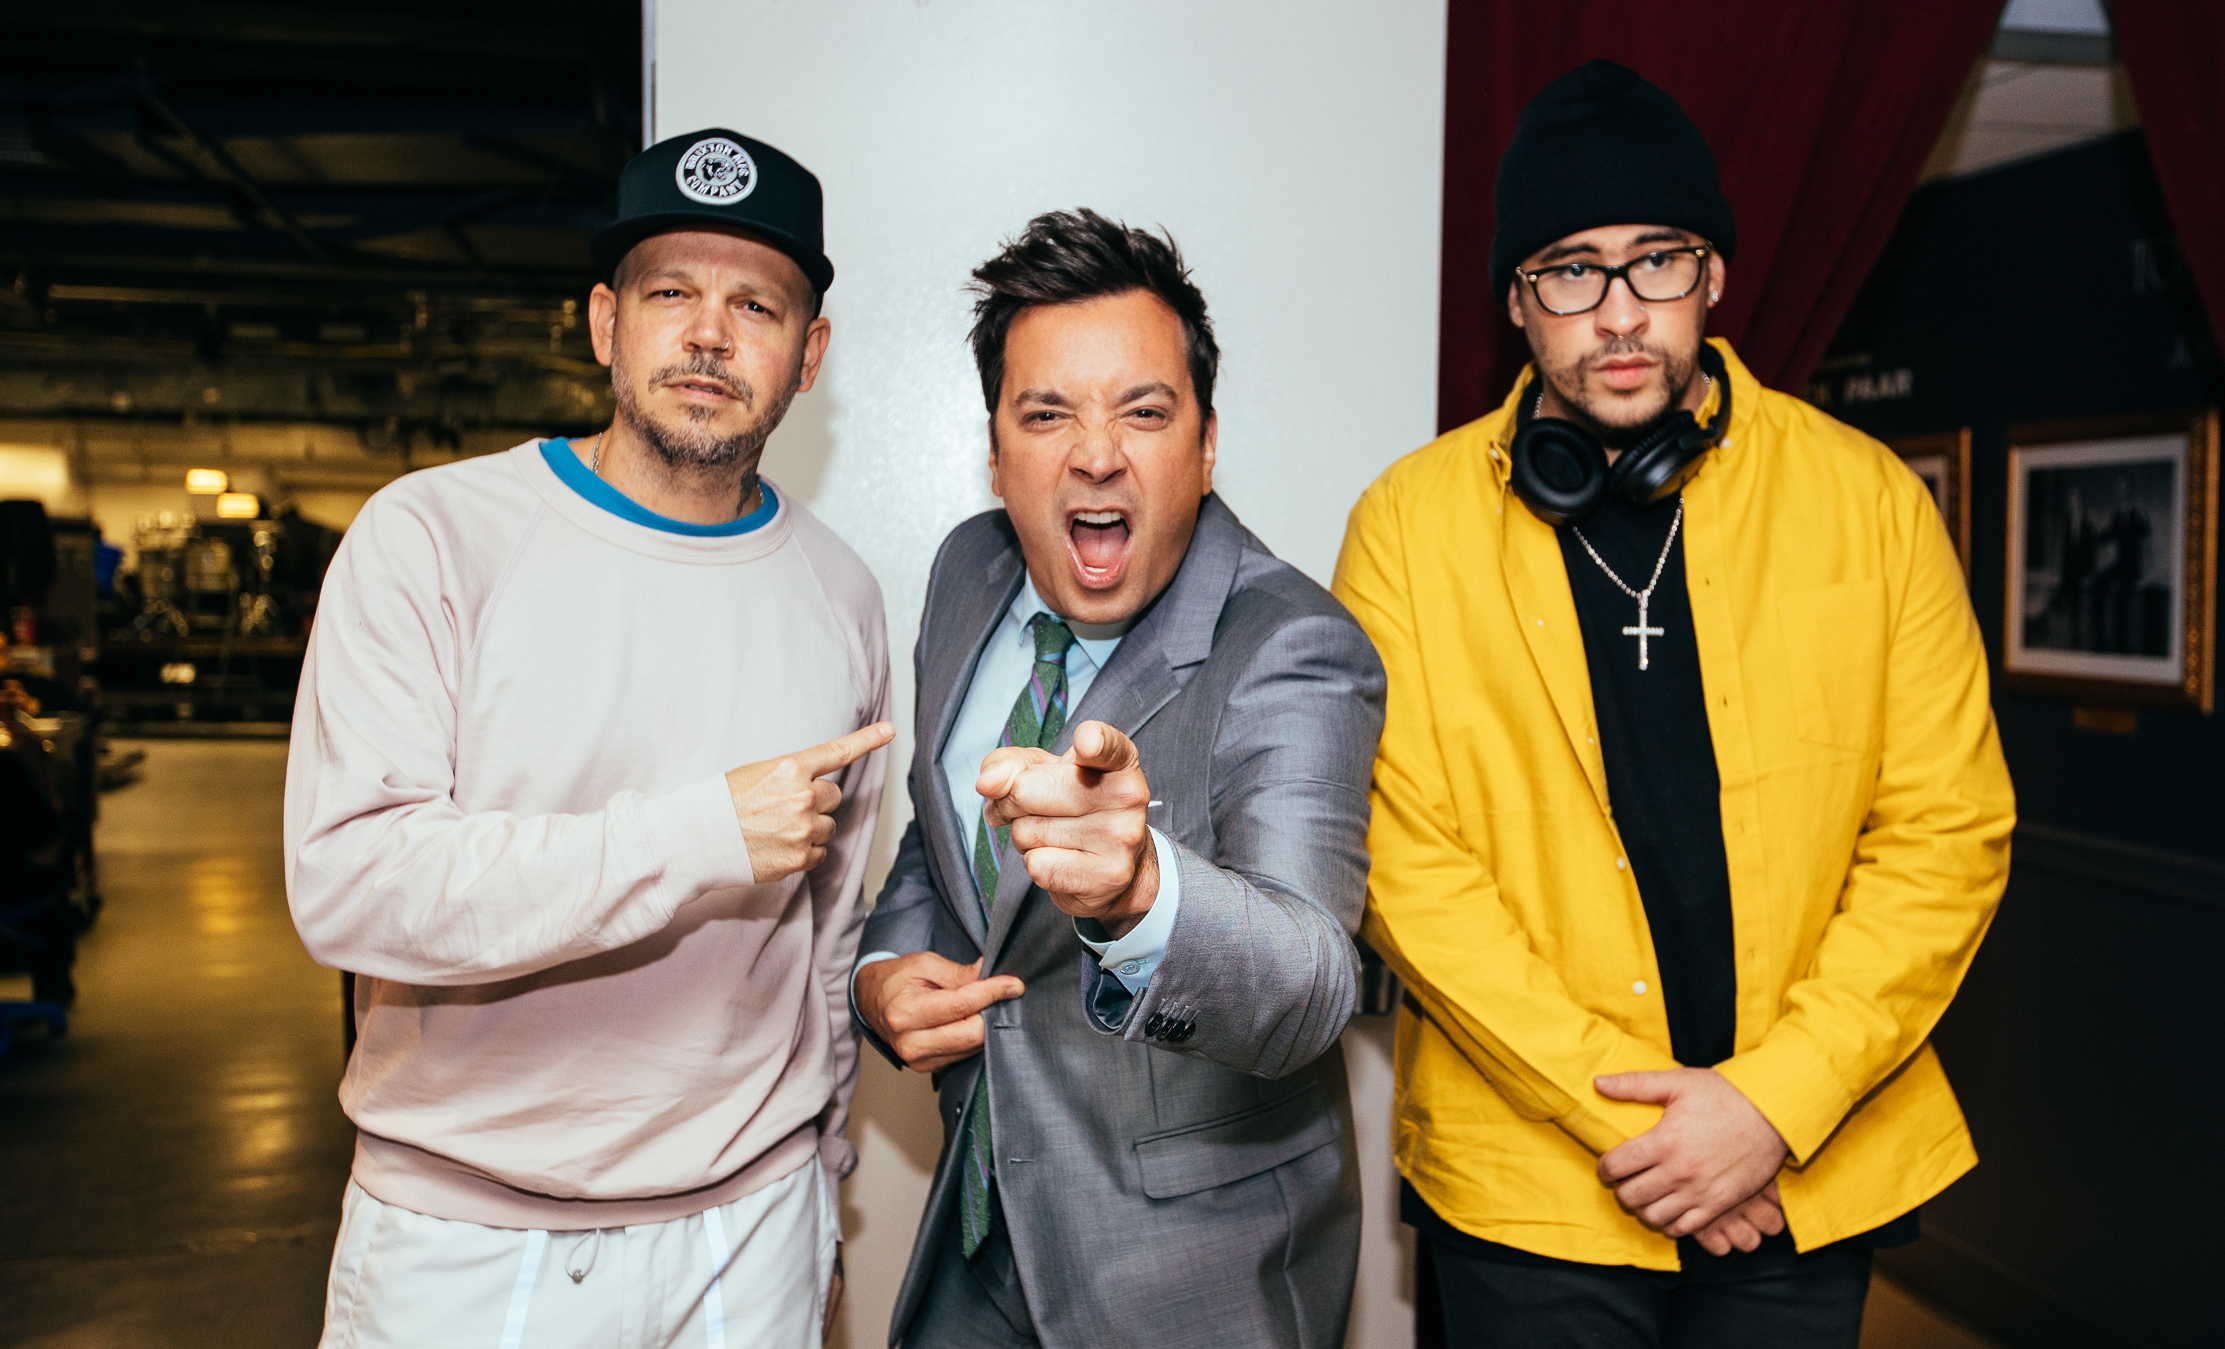 We Have Thoughts About Residente and Bad Bunny's Performance on The Tonight Show